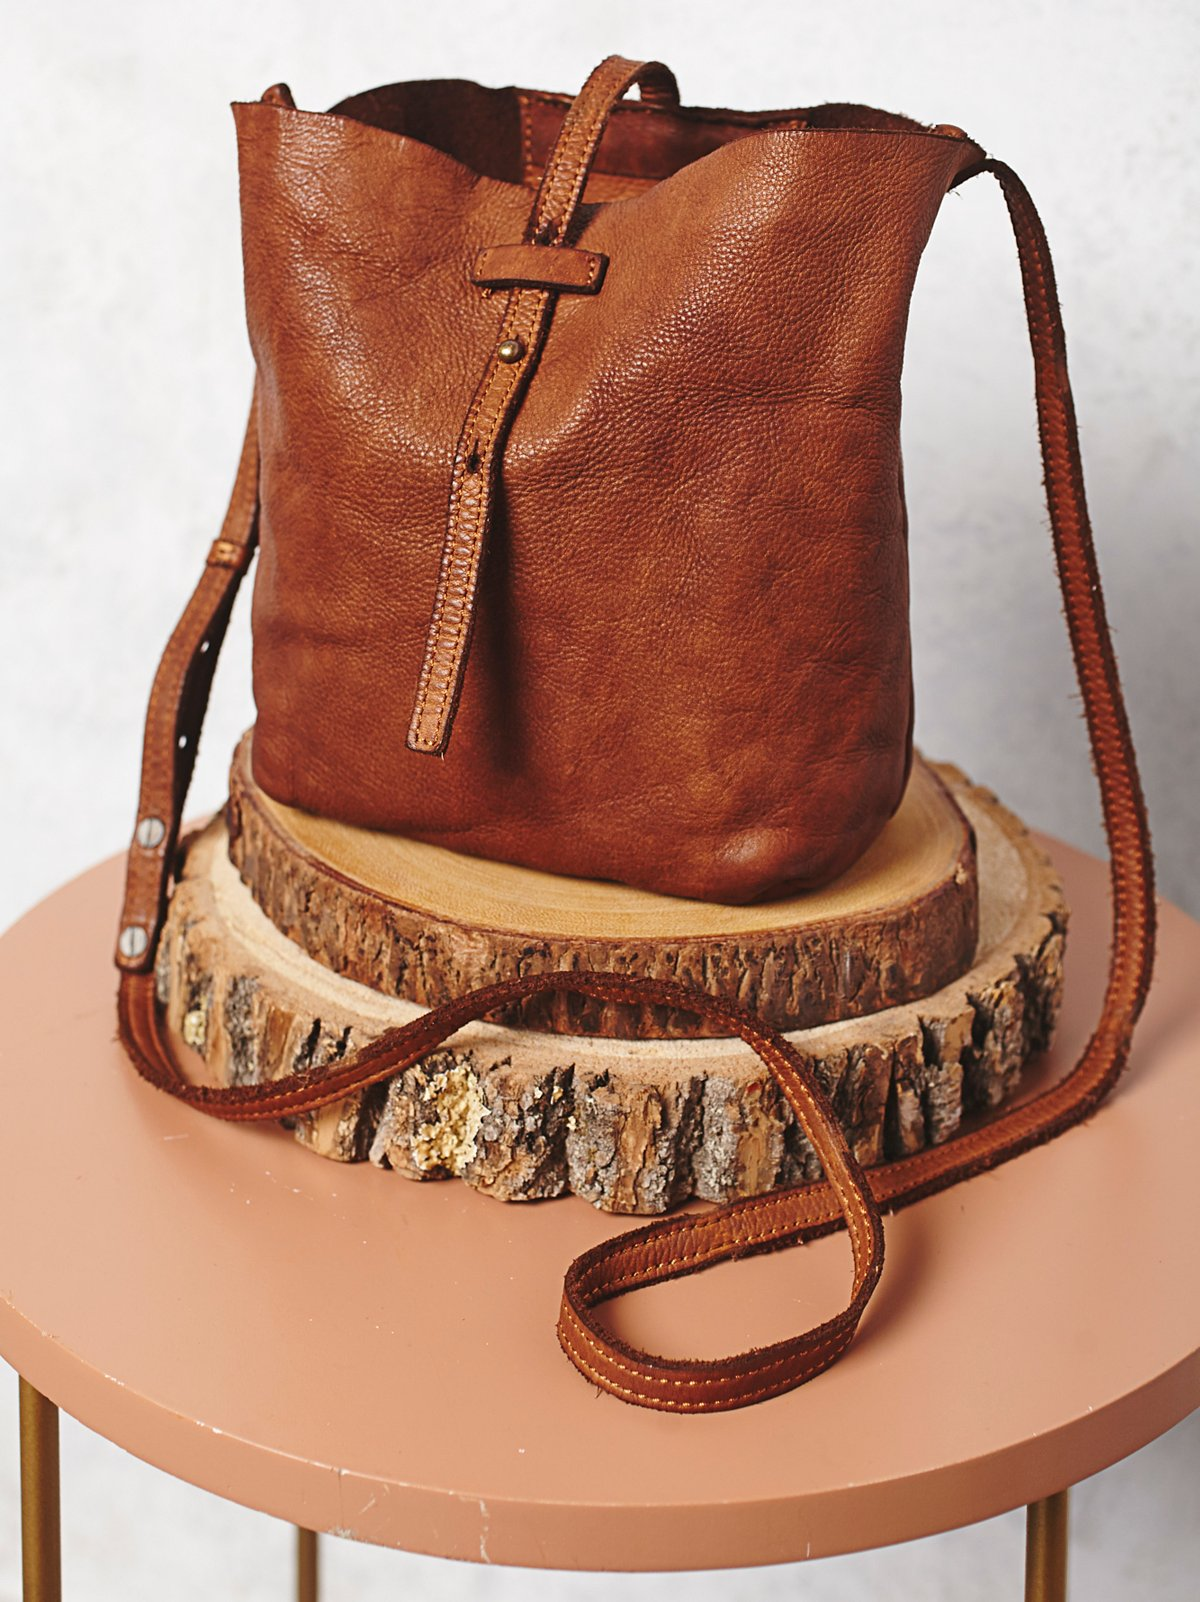 Burke Mini Bucket Bag